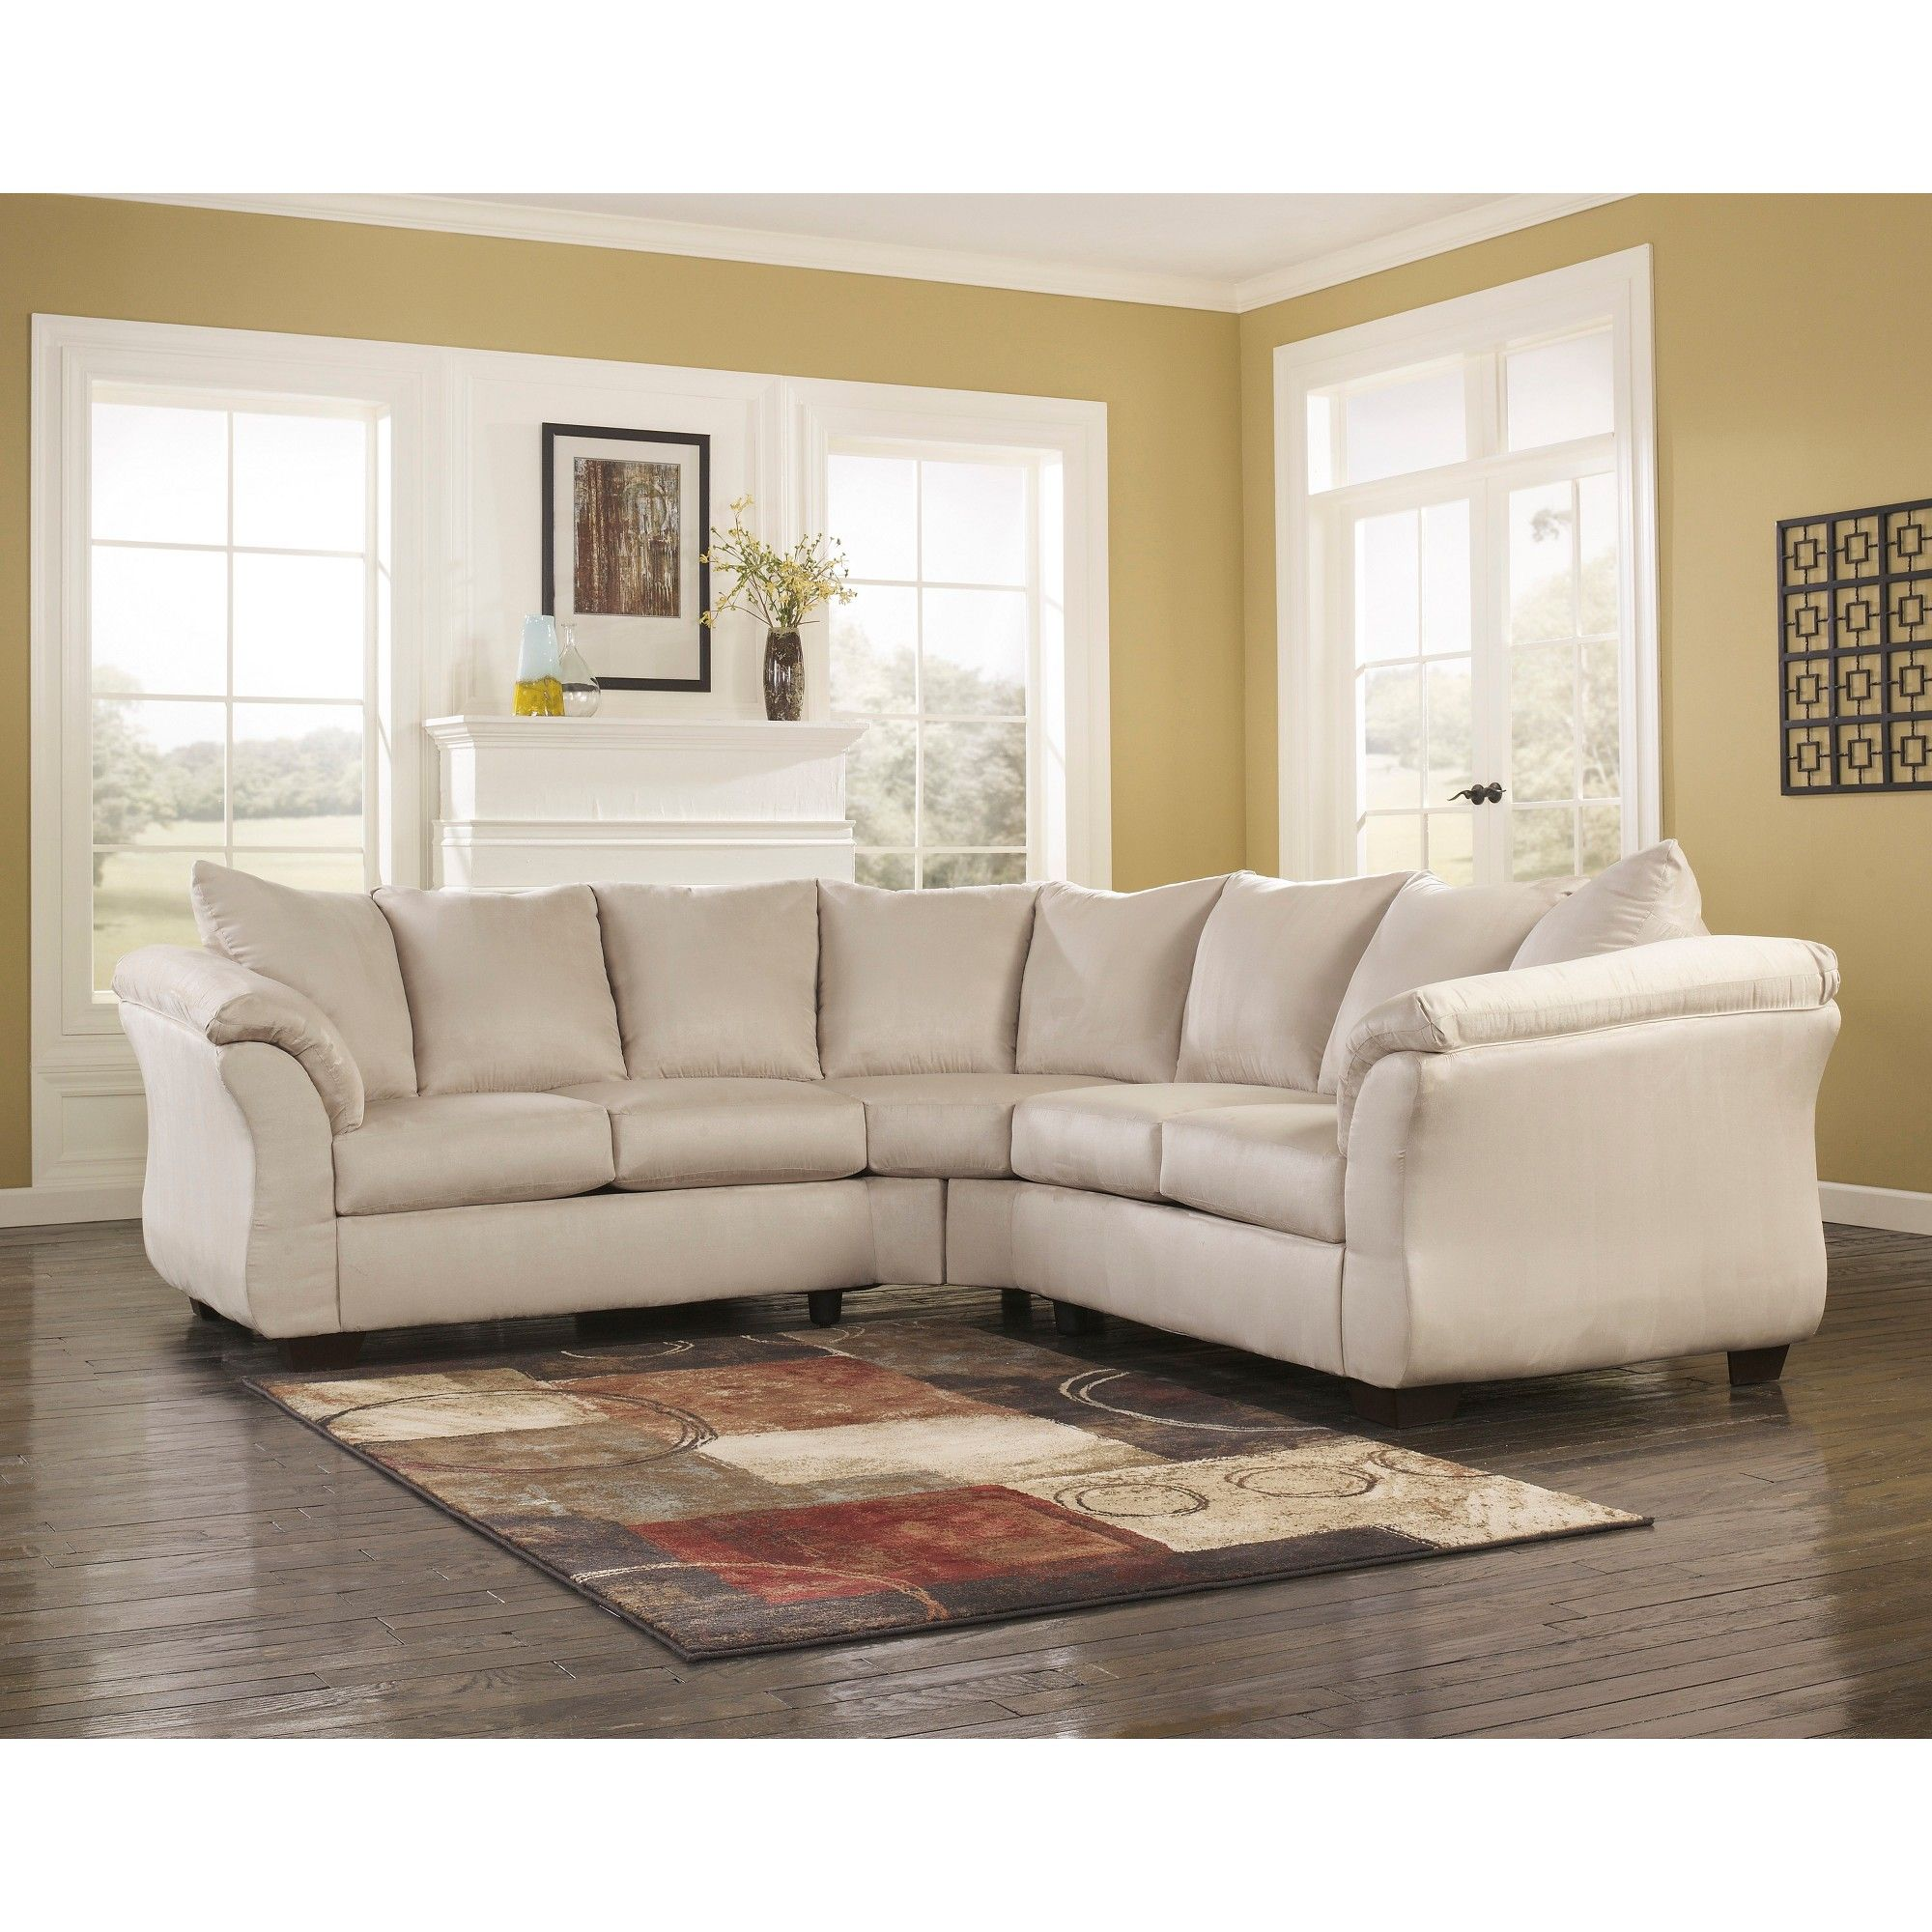 Riverstone Furniture Collection Microfiber Sectional Stone (Grey)